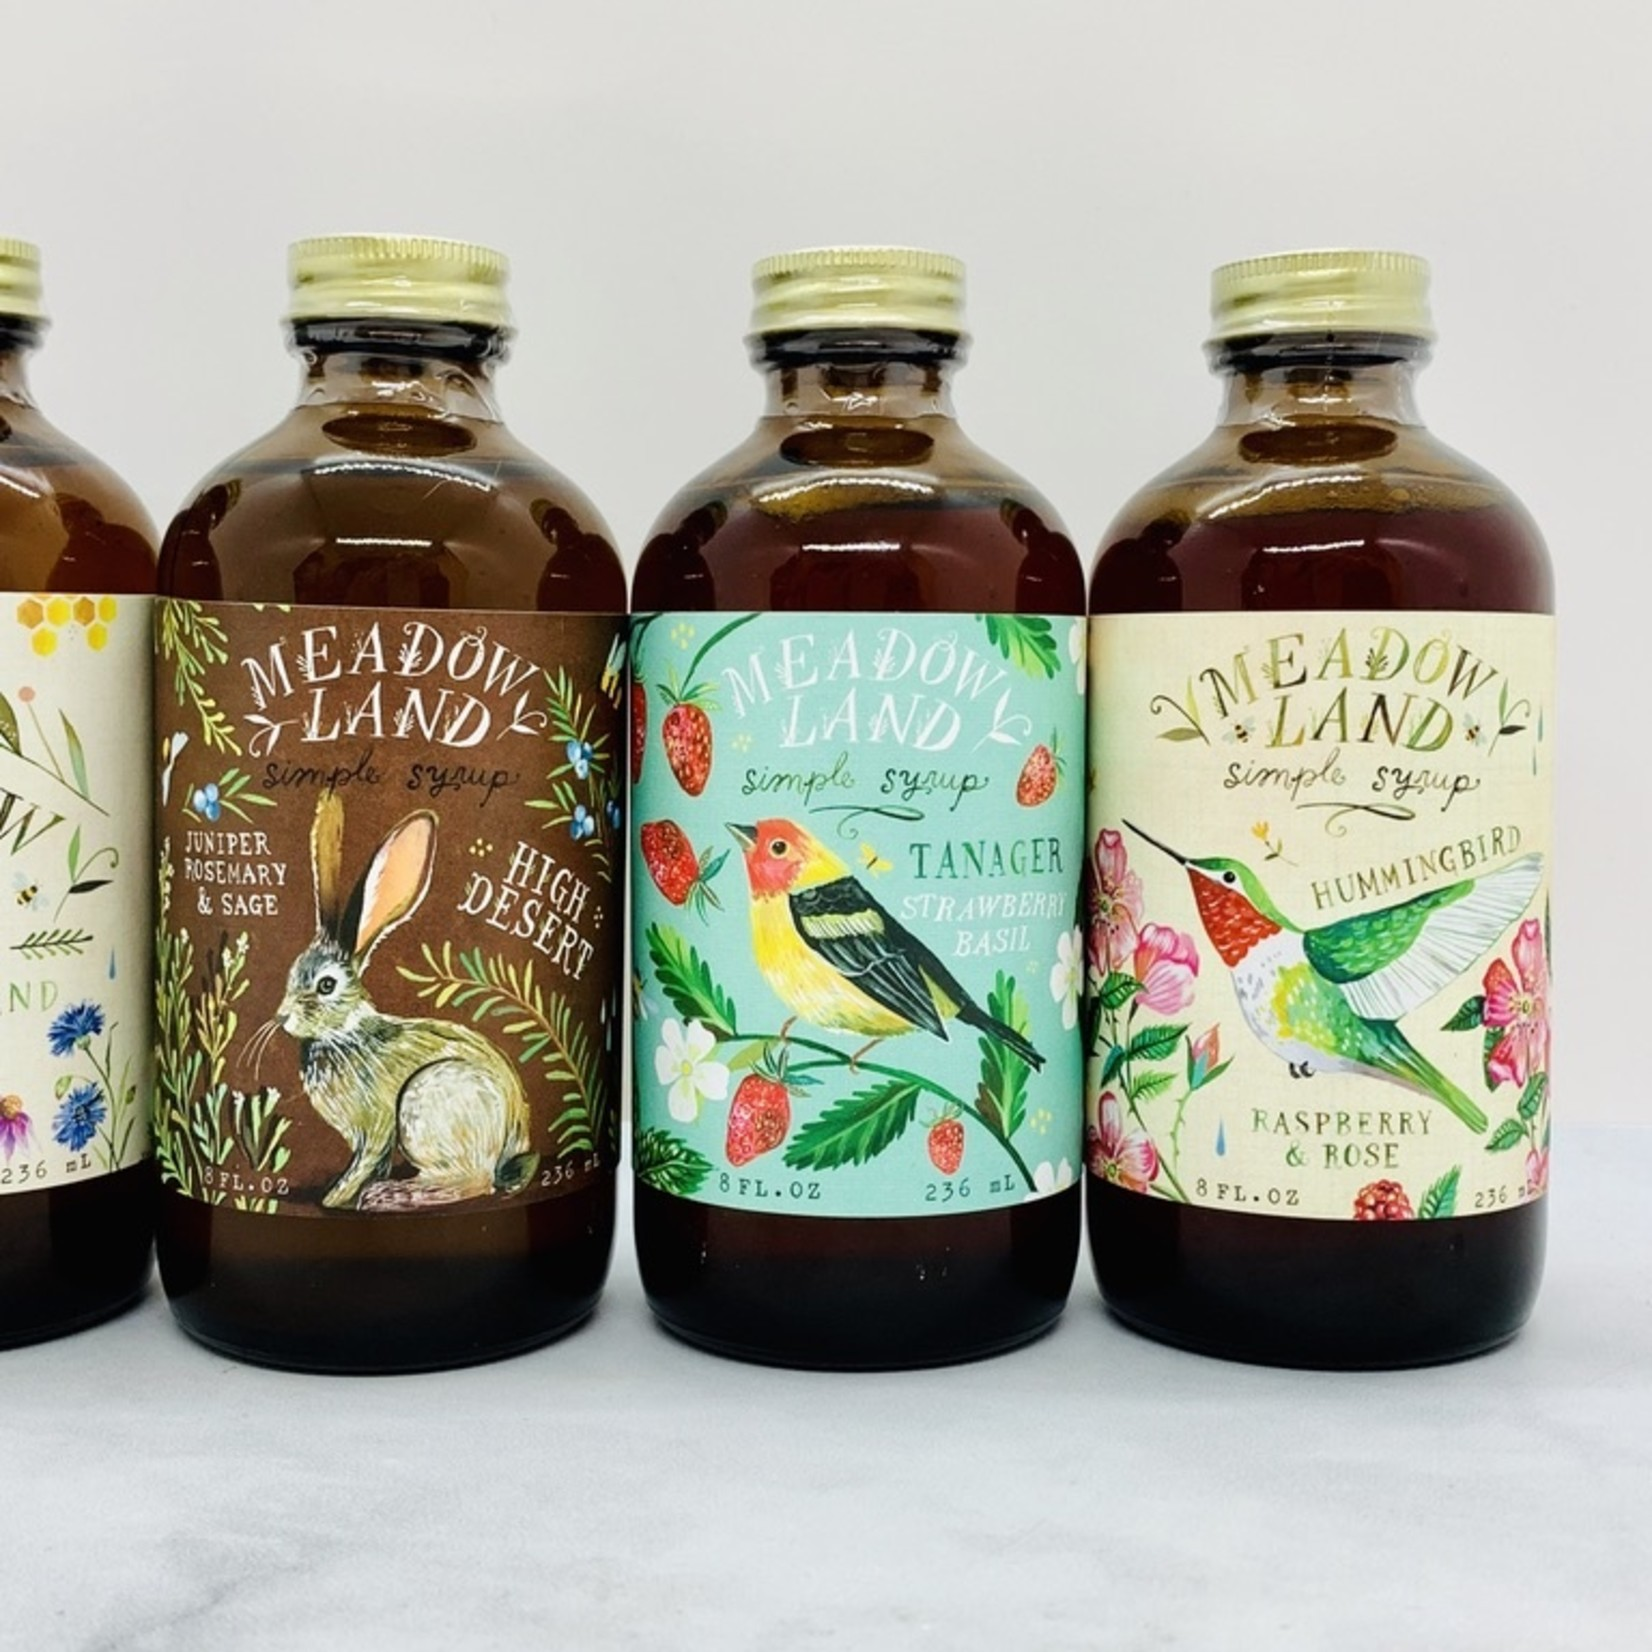 Meadowland Syrup Meadowland Syrup